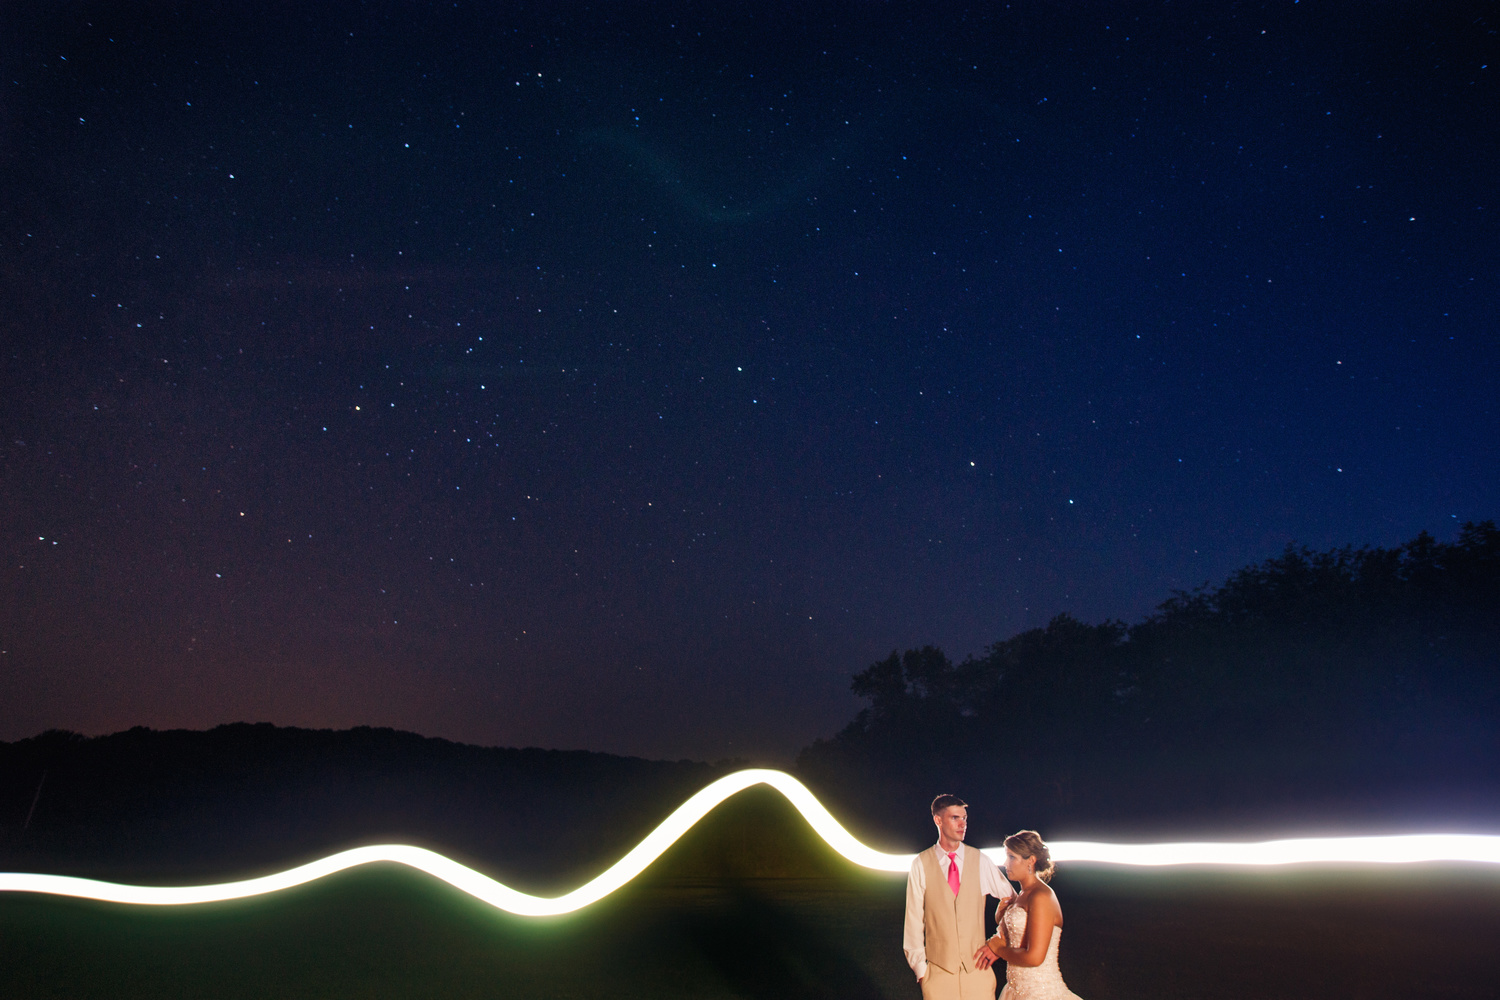 Light Painting Wedding Photography: How To Incorporate Night Photography Into The Wedding Day